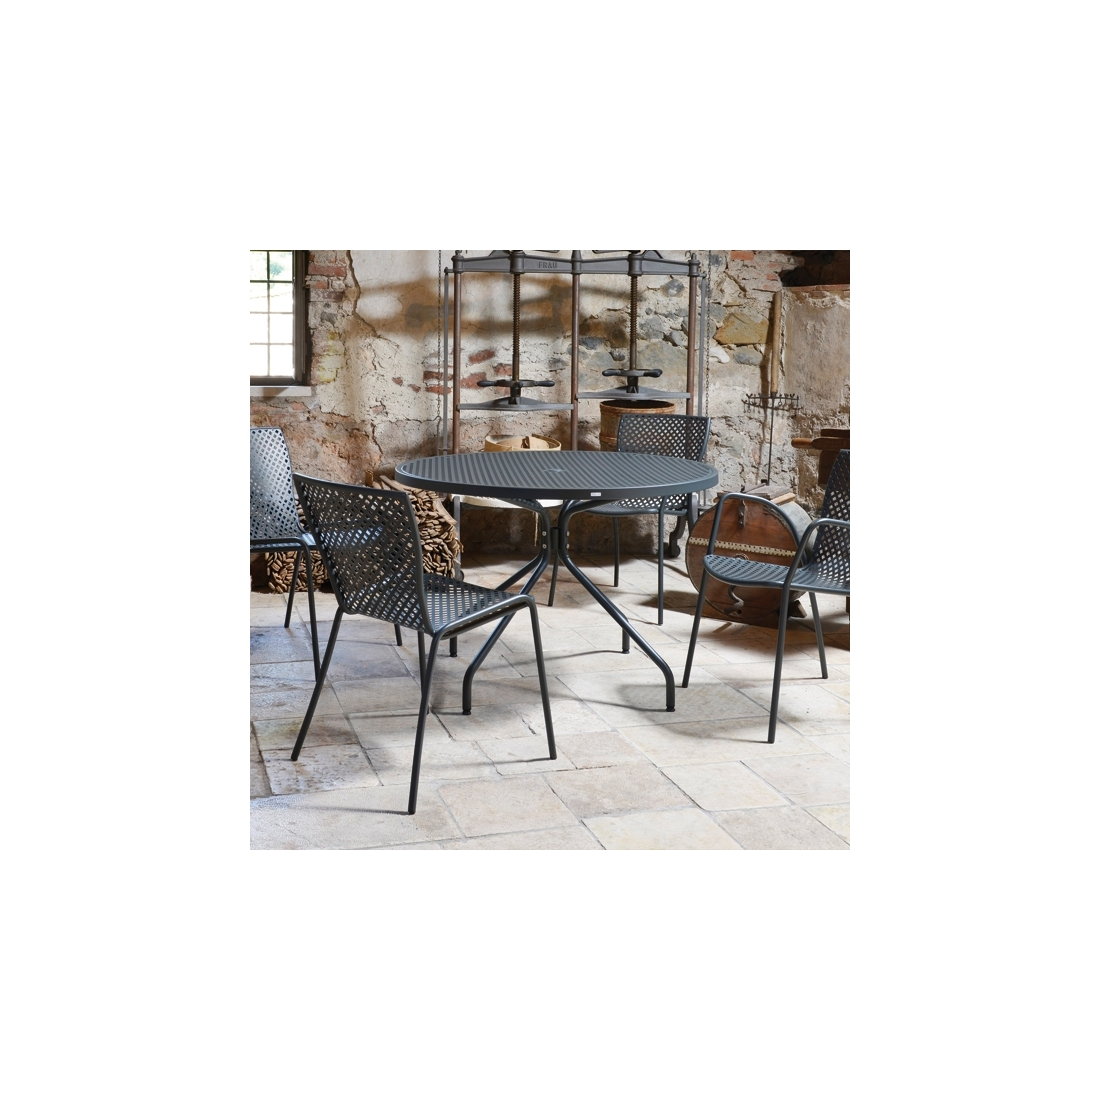 Table ronde de jardin estate 110 zendart design for Petite table ronde de jardin